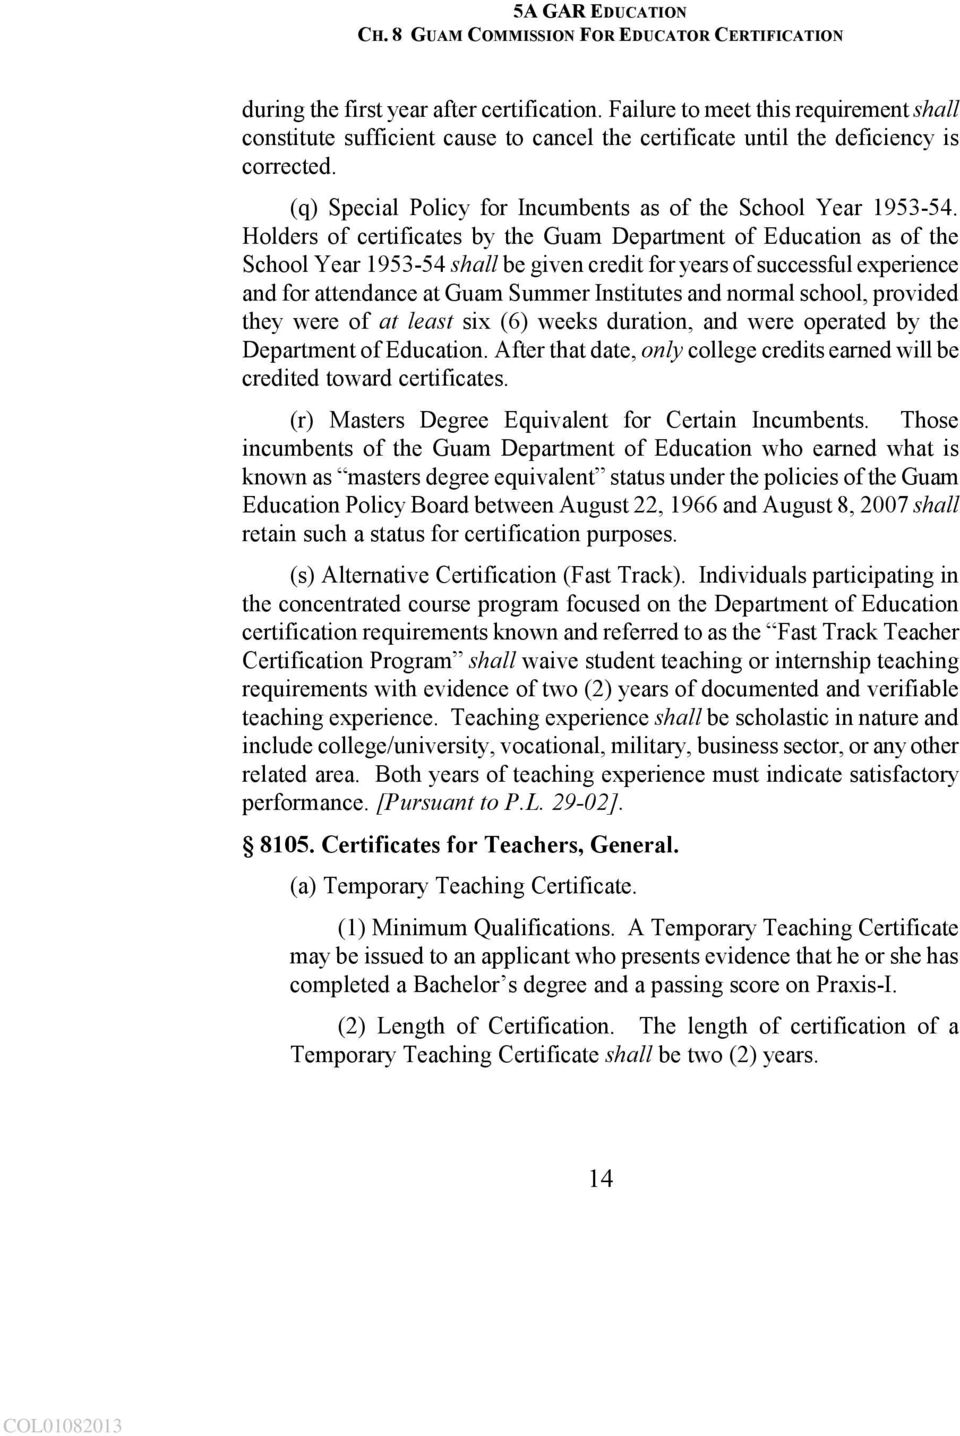 Holders of certificates by the Guam Department of Education as of the School Year 1953-54 shall be given credit for years of successful experience and for attendance at Guam Summer Institutes and